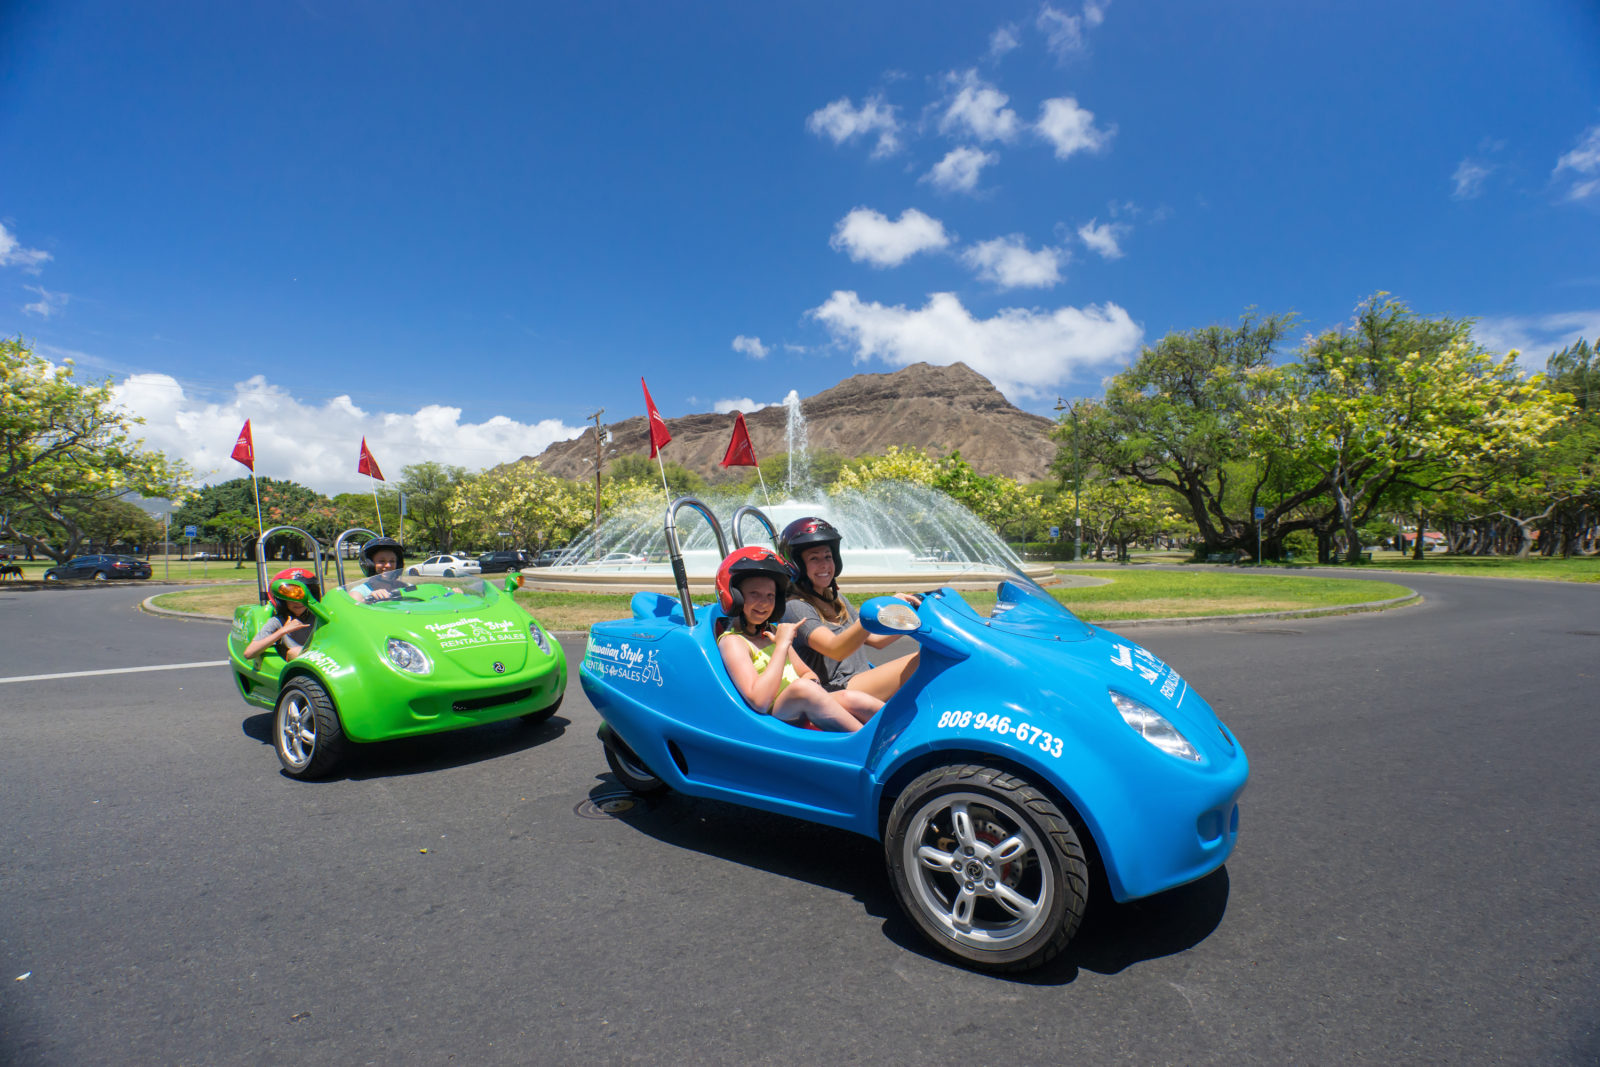 Two Person Moped Rentals In Waikiki Hawaii Scoot Coupe